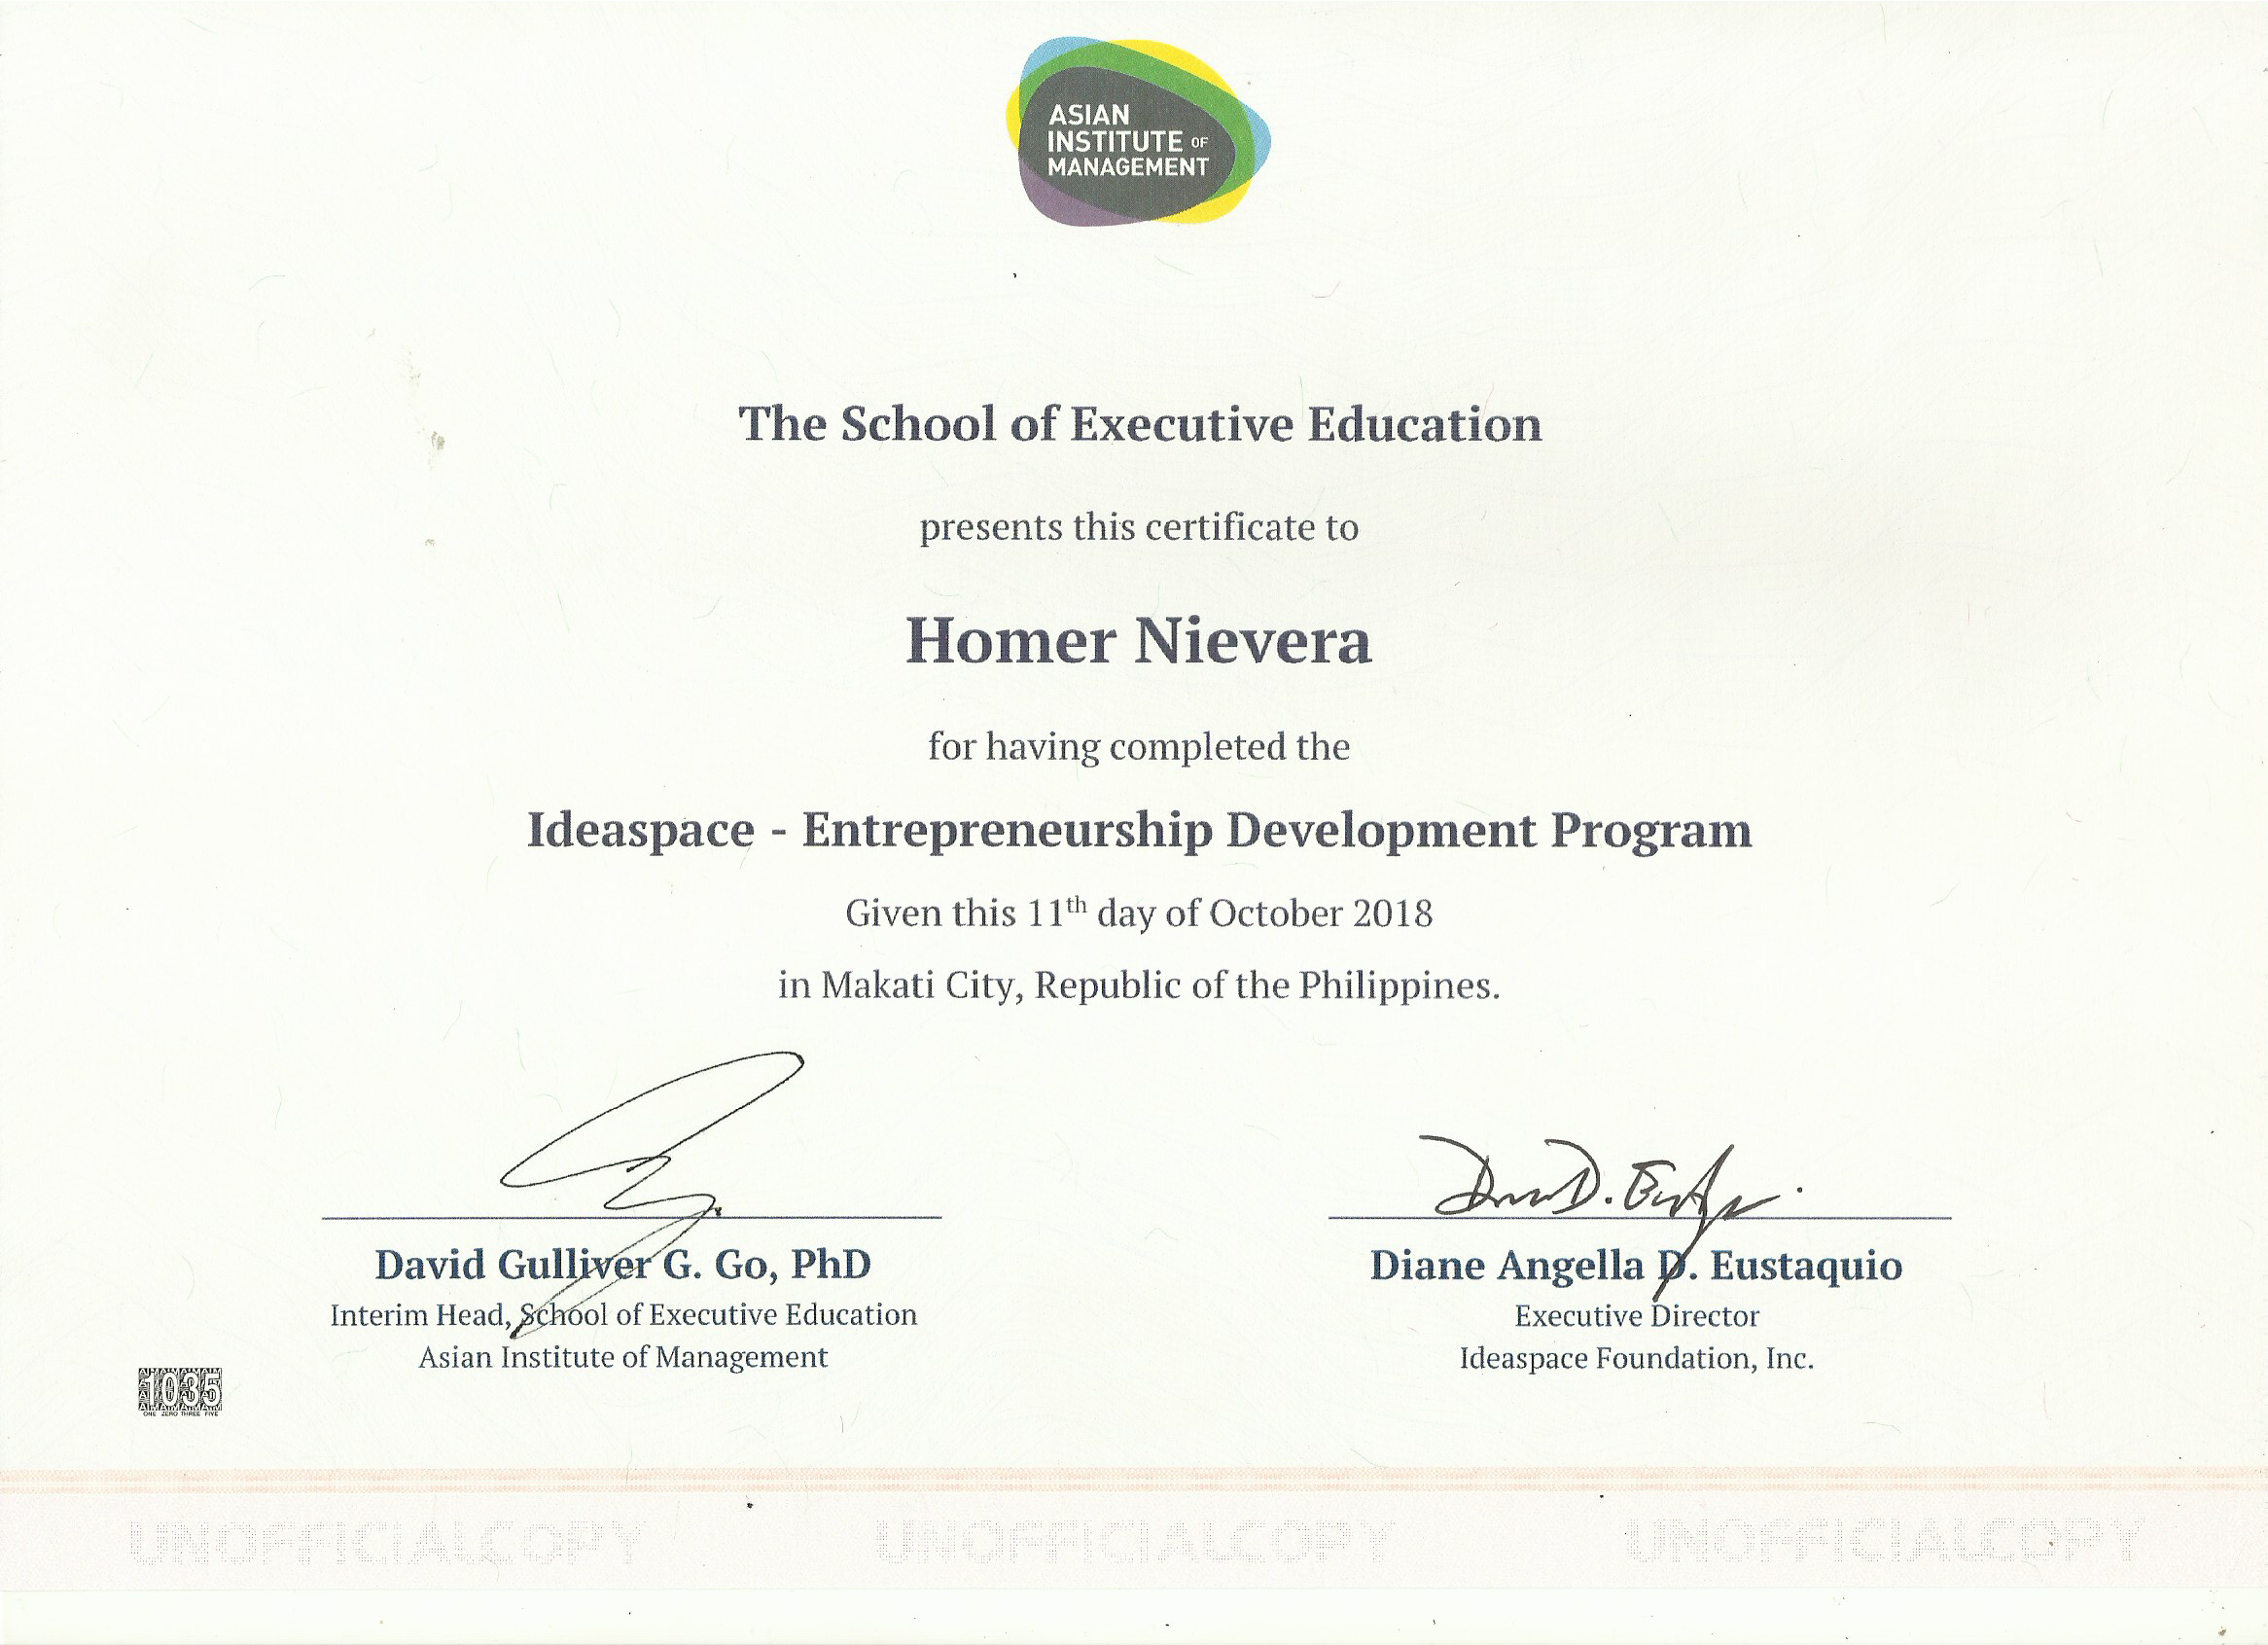 Ideaspace - Entrep Mgmt Program